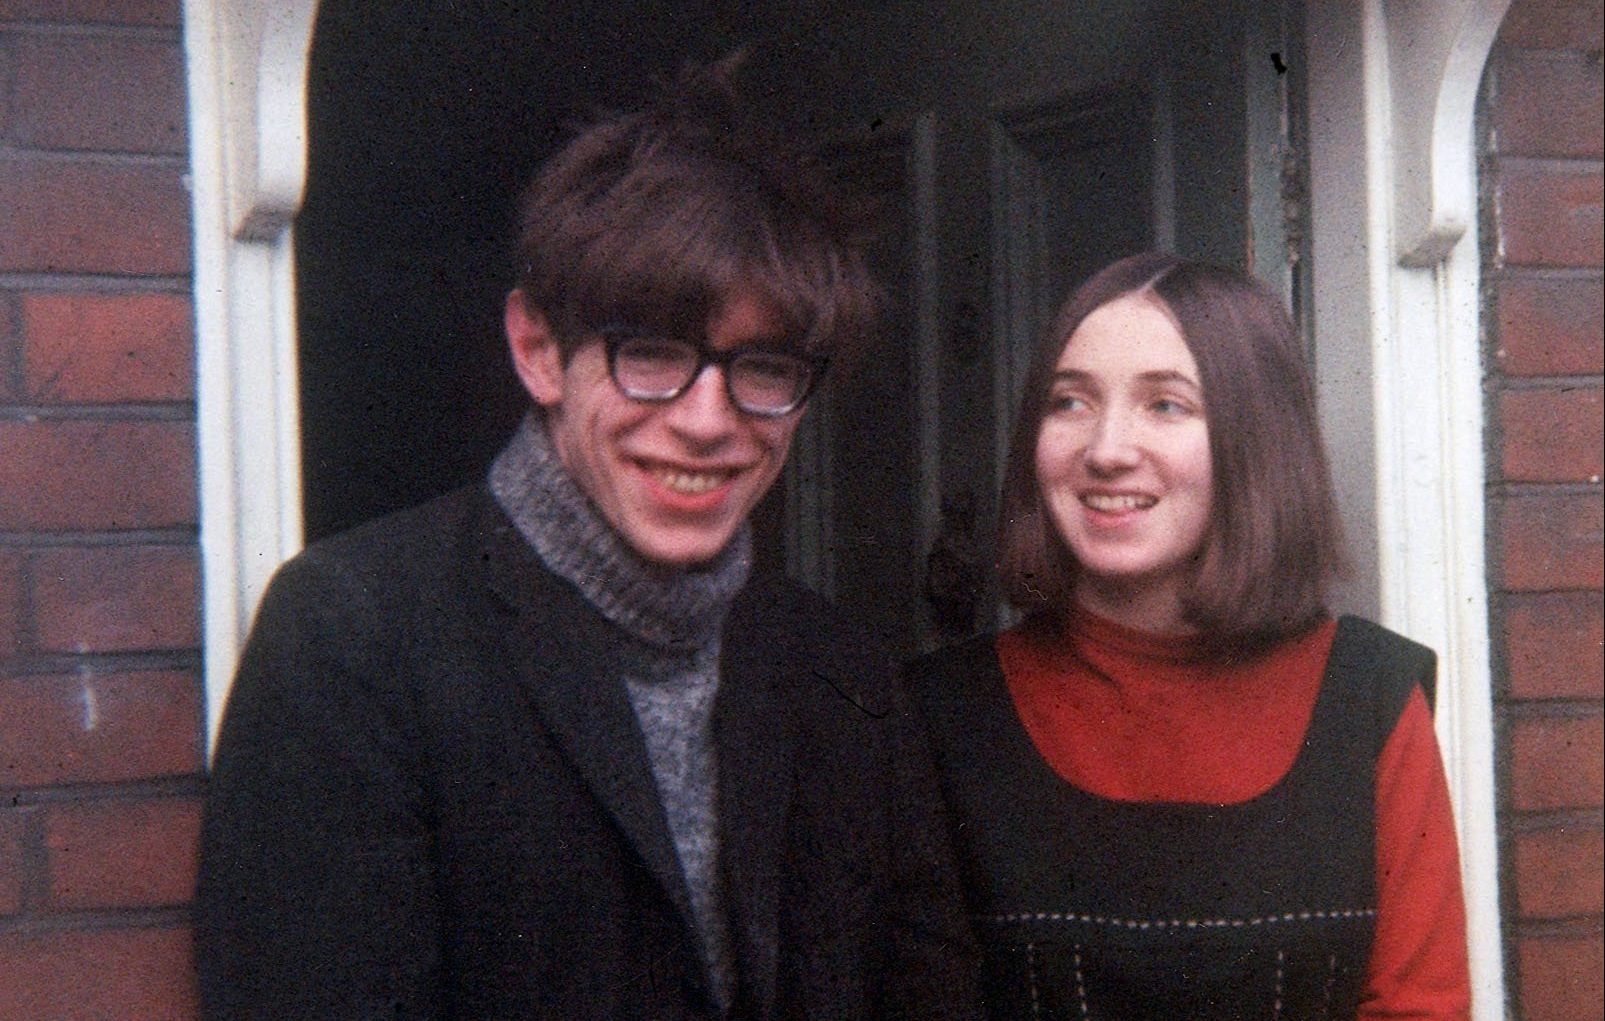 """THE BIOGRAPHY OF JANE HAWKING. She is the former wife of the scientific genius Doctor Stephen Hawking, author of the bestseller """"A Brief History of Time"""". Pic: Jane and Stephen in the 1960's."""